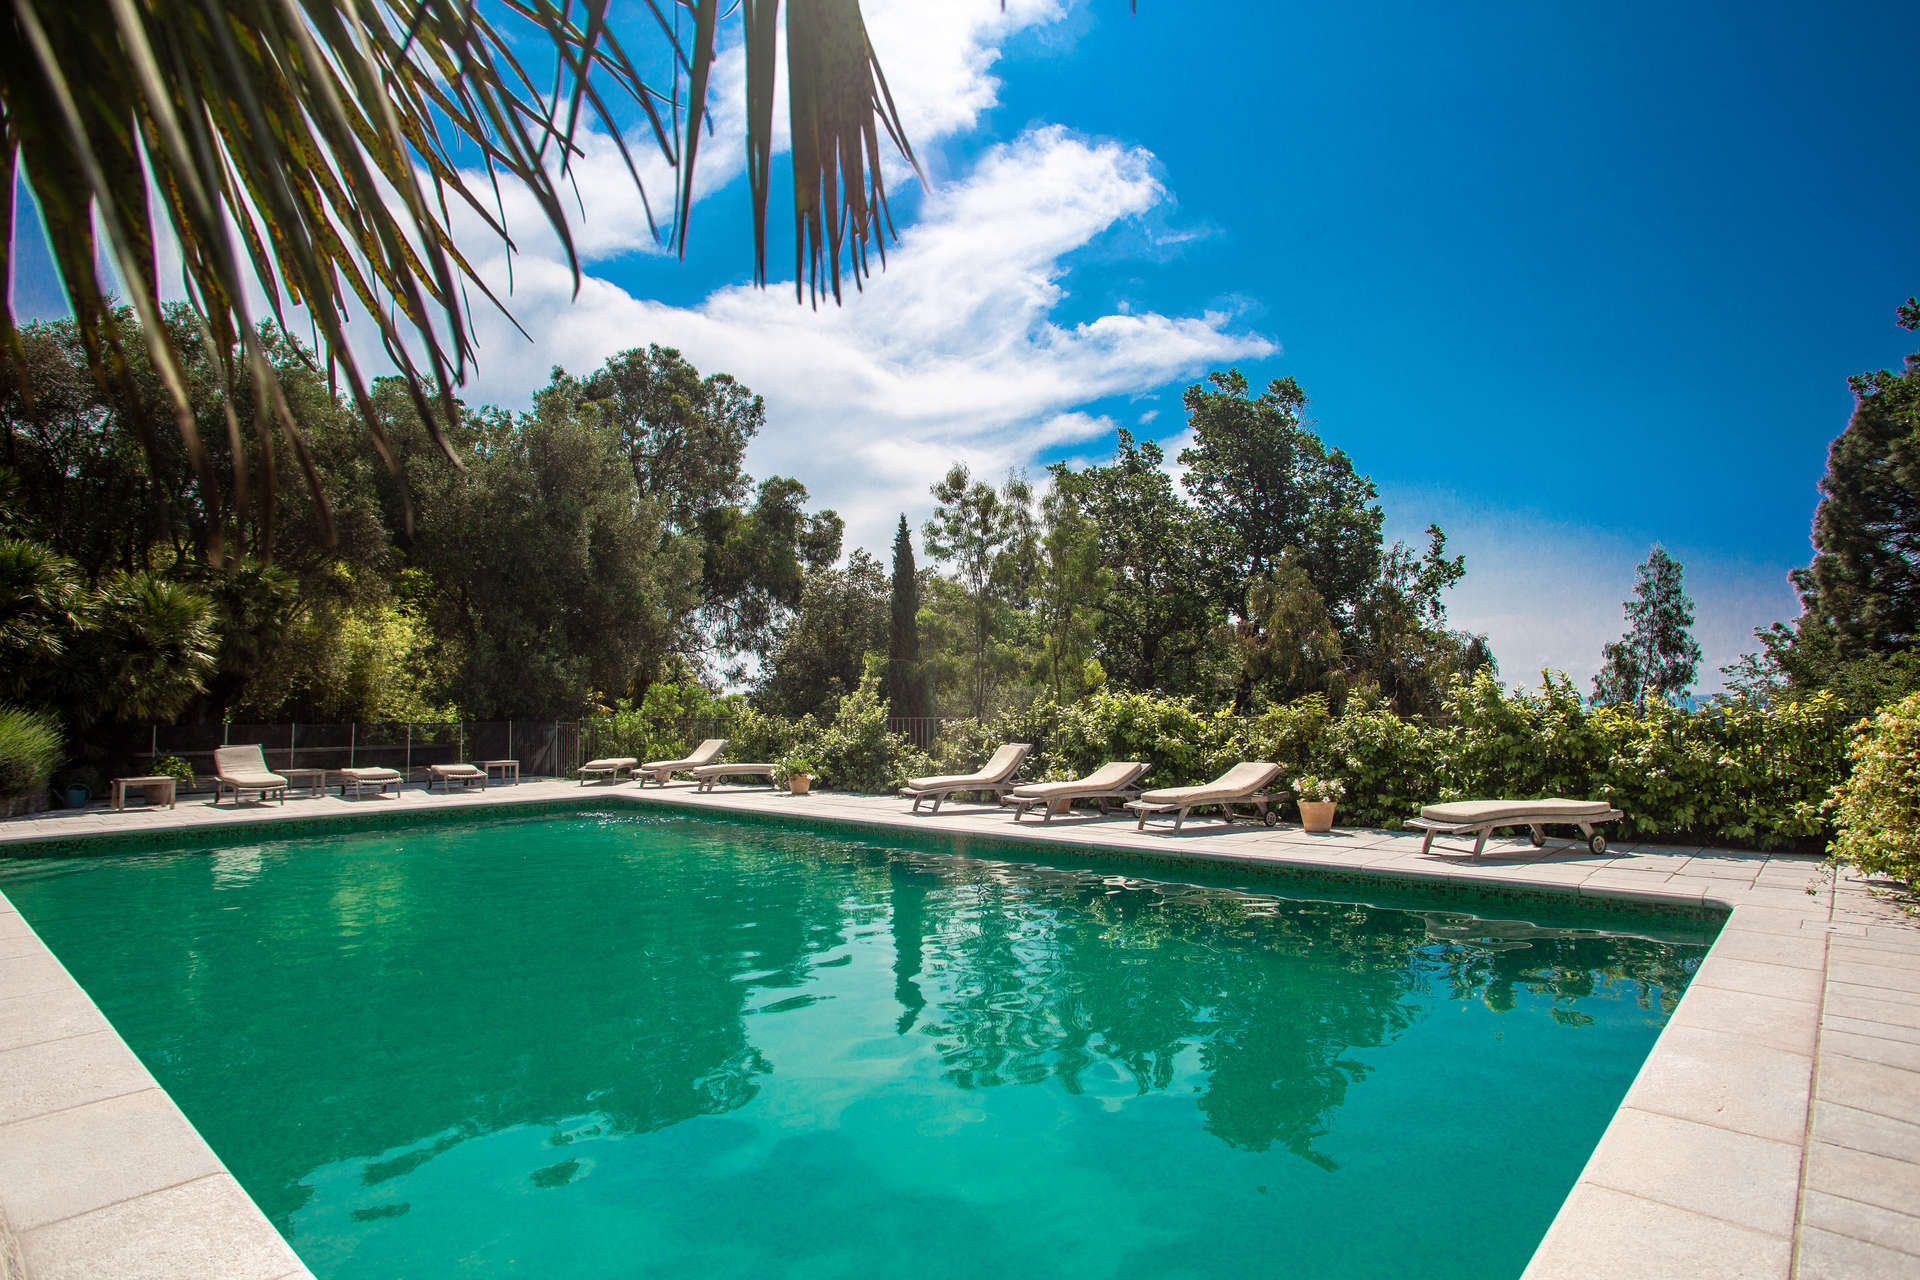 Luxury vacation rentals europe - France - Frenchriviera - Cagnes sur mer france - Bastide du Chateau - Image 1/22